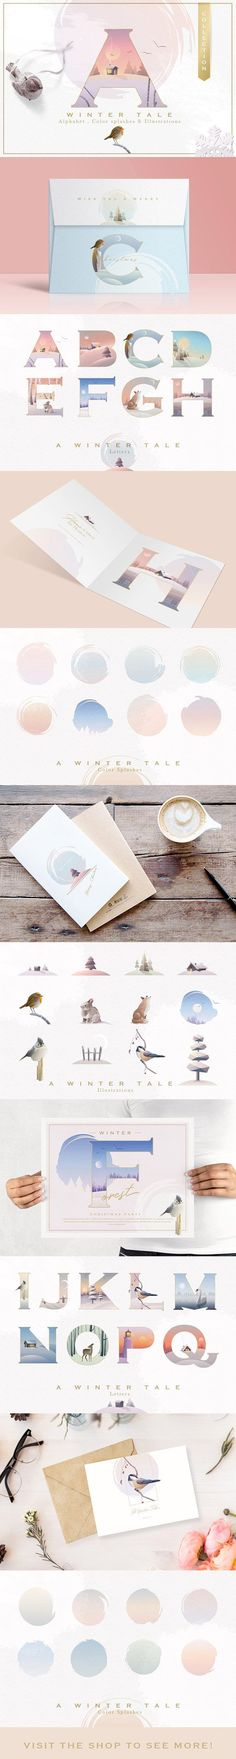 A Winter Tale collection by Polar Vectors on @creativemarket